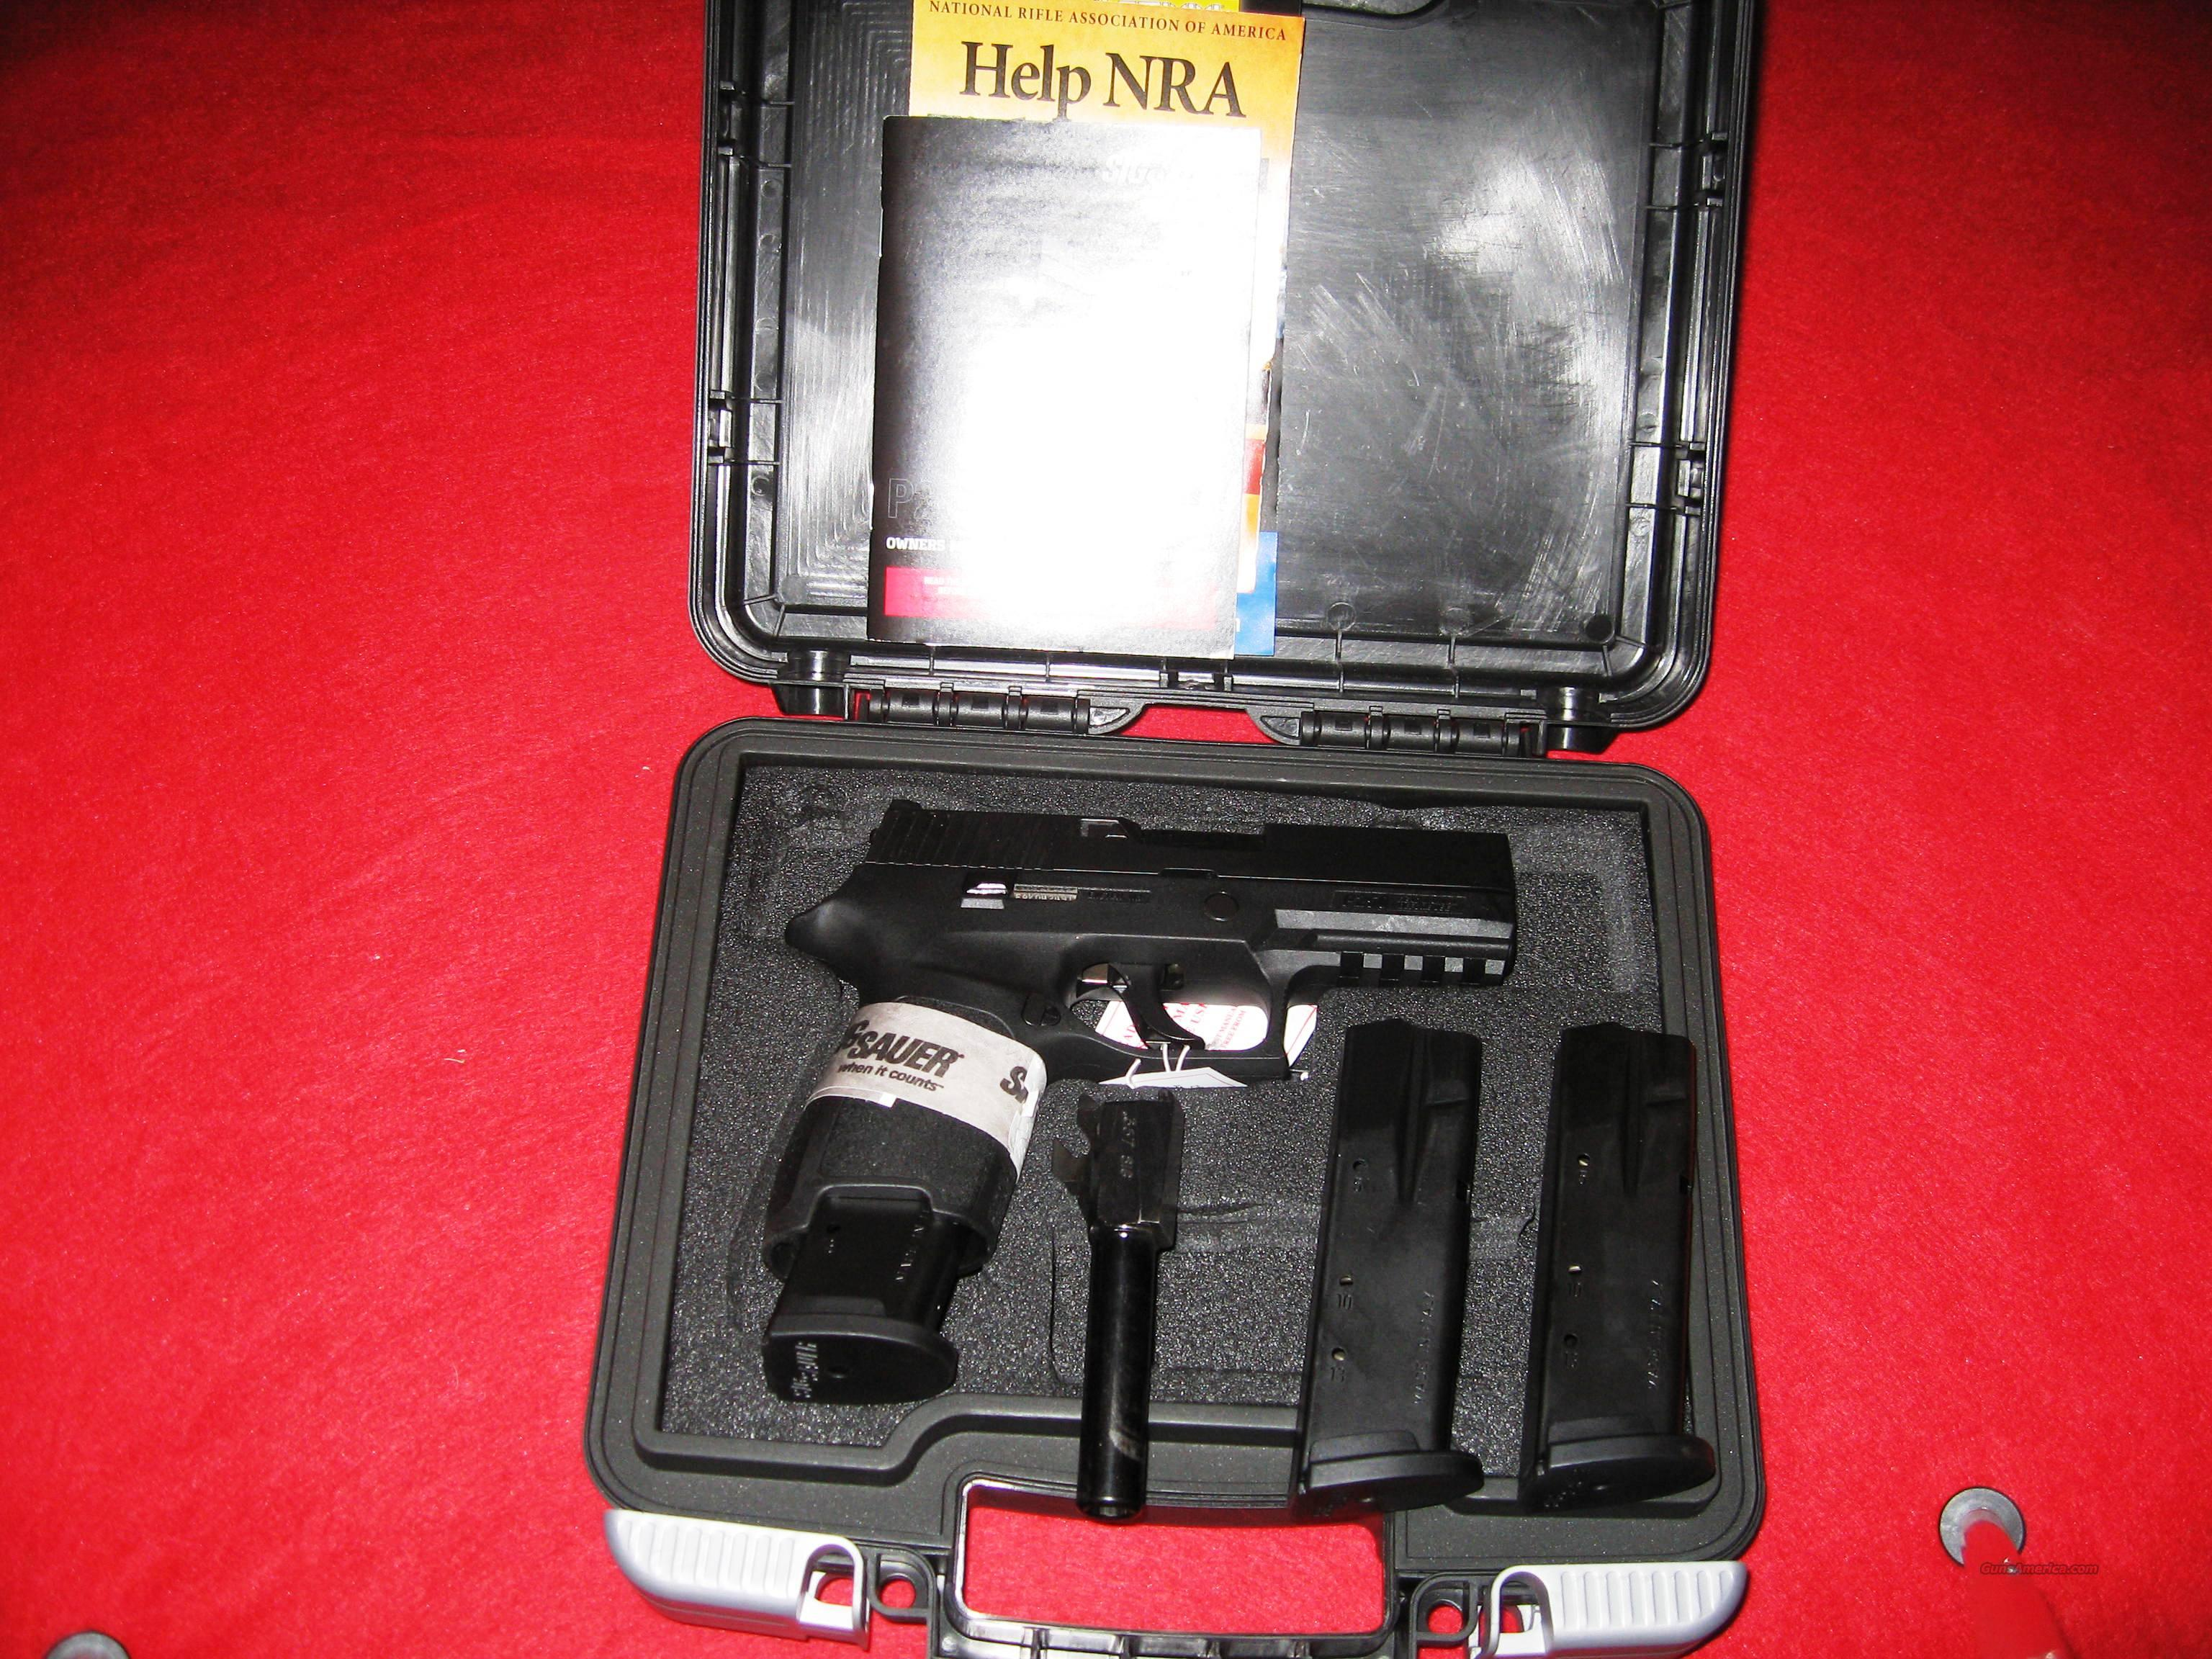 SIG P250 COMPACT  .40 cal\.357 SIG COMBO with 3-13rd magazines!!!LAYAWAY!!!  Guns > Pistols > Sig - Sauer/Sigarms Pistols > P250